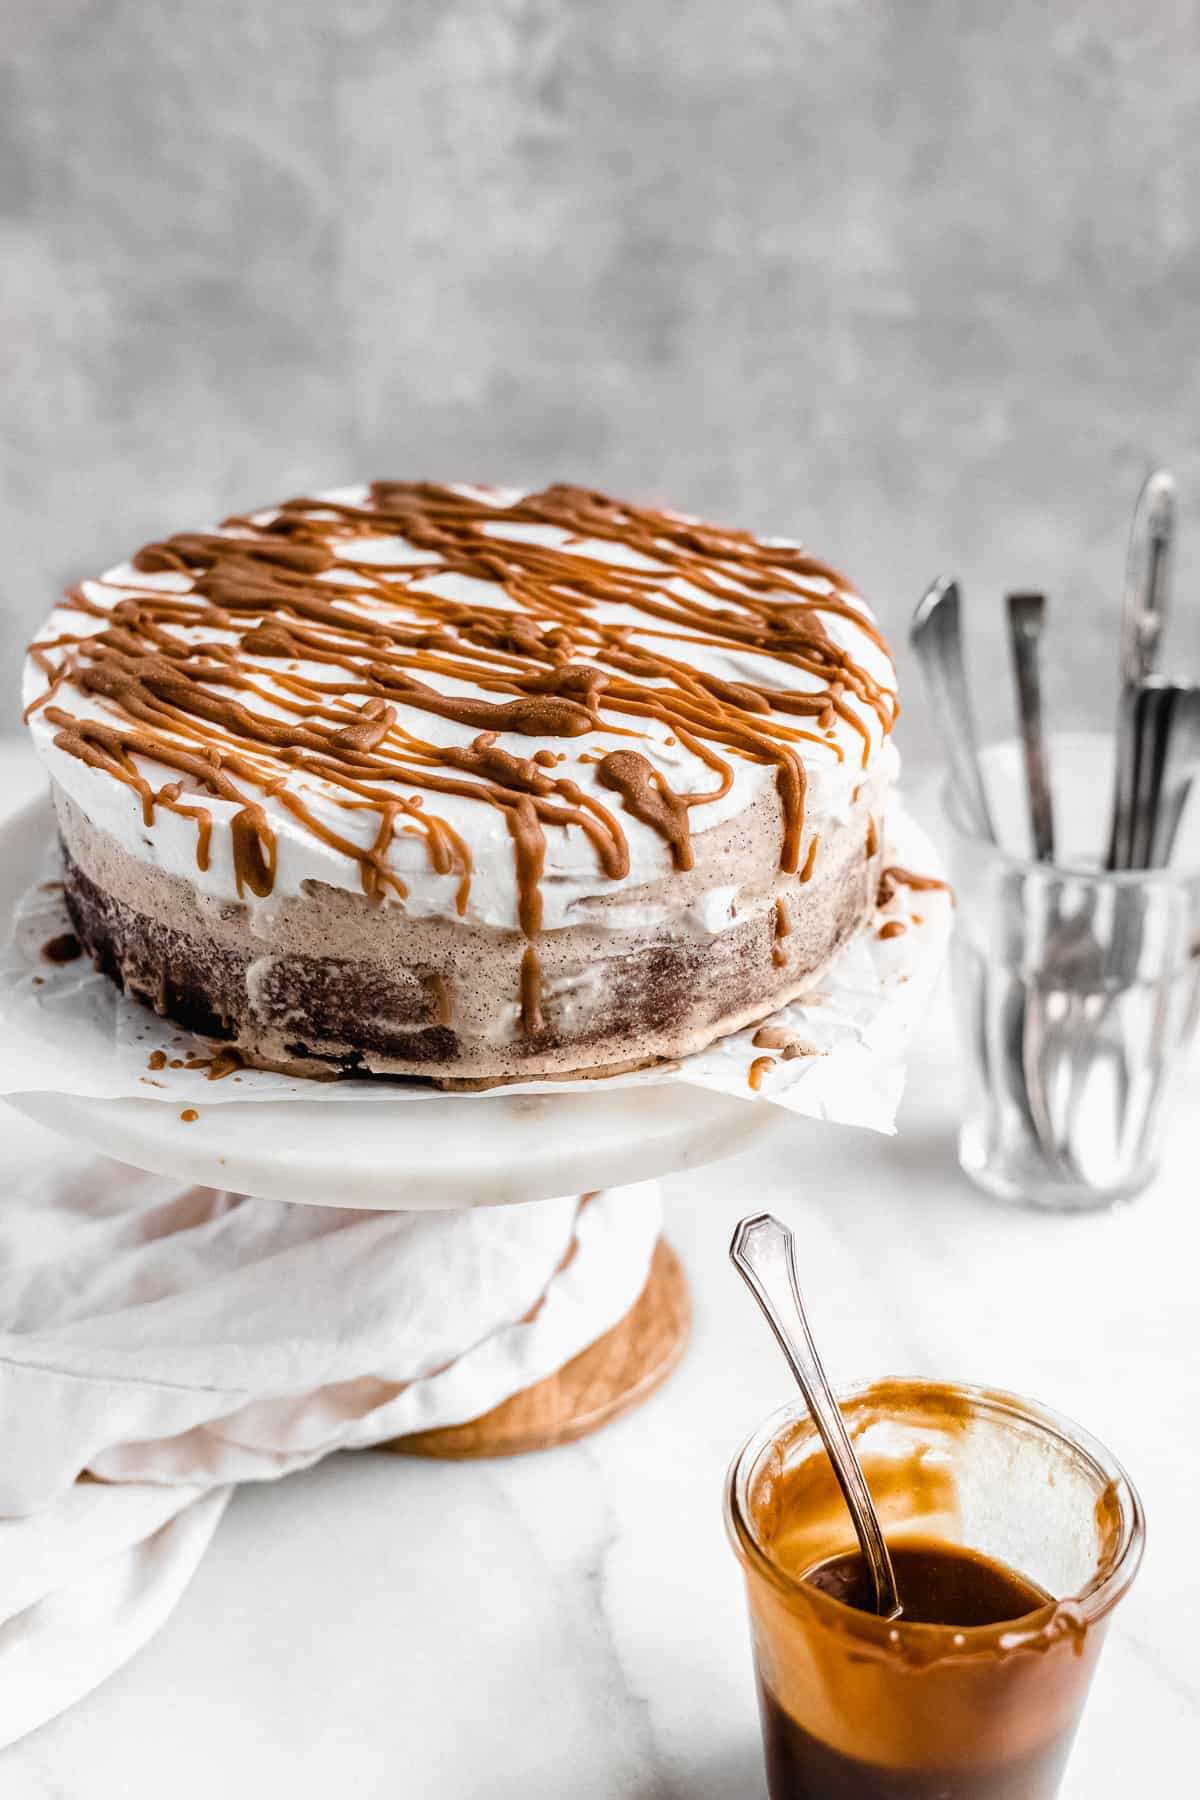 Side view photo of completed cake sitting on a white marble cake plate.  A jar of caramel sauce and a glass with utensils can be seen in the background.